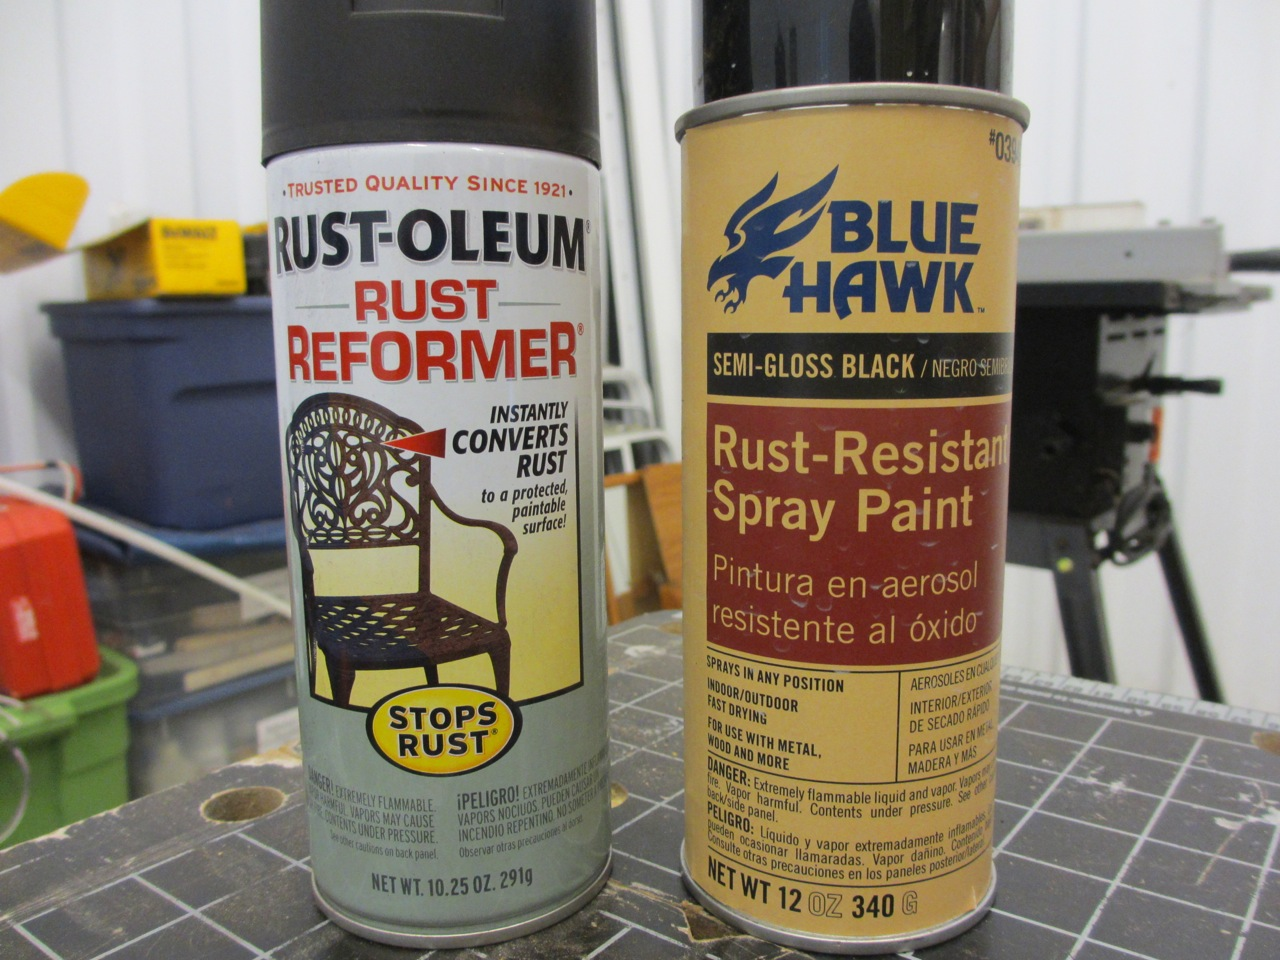 Once the rust was all removed, we first sprayed the chassis with Rust Reformer primer. The primer stops any additional rusting from any leftover rust that may still be on the metal. Once that dried (20 - 30 minutes), we used the Rust Resistant spray paint to prevent future rust from occurring (take 12 hours to dry). We sprayed two coats of each.